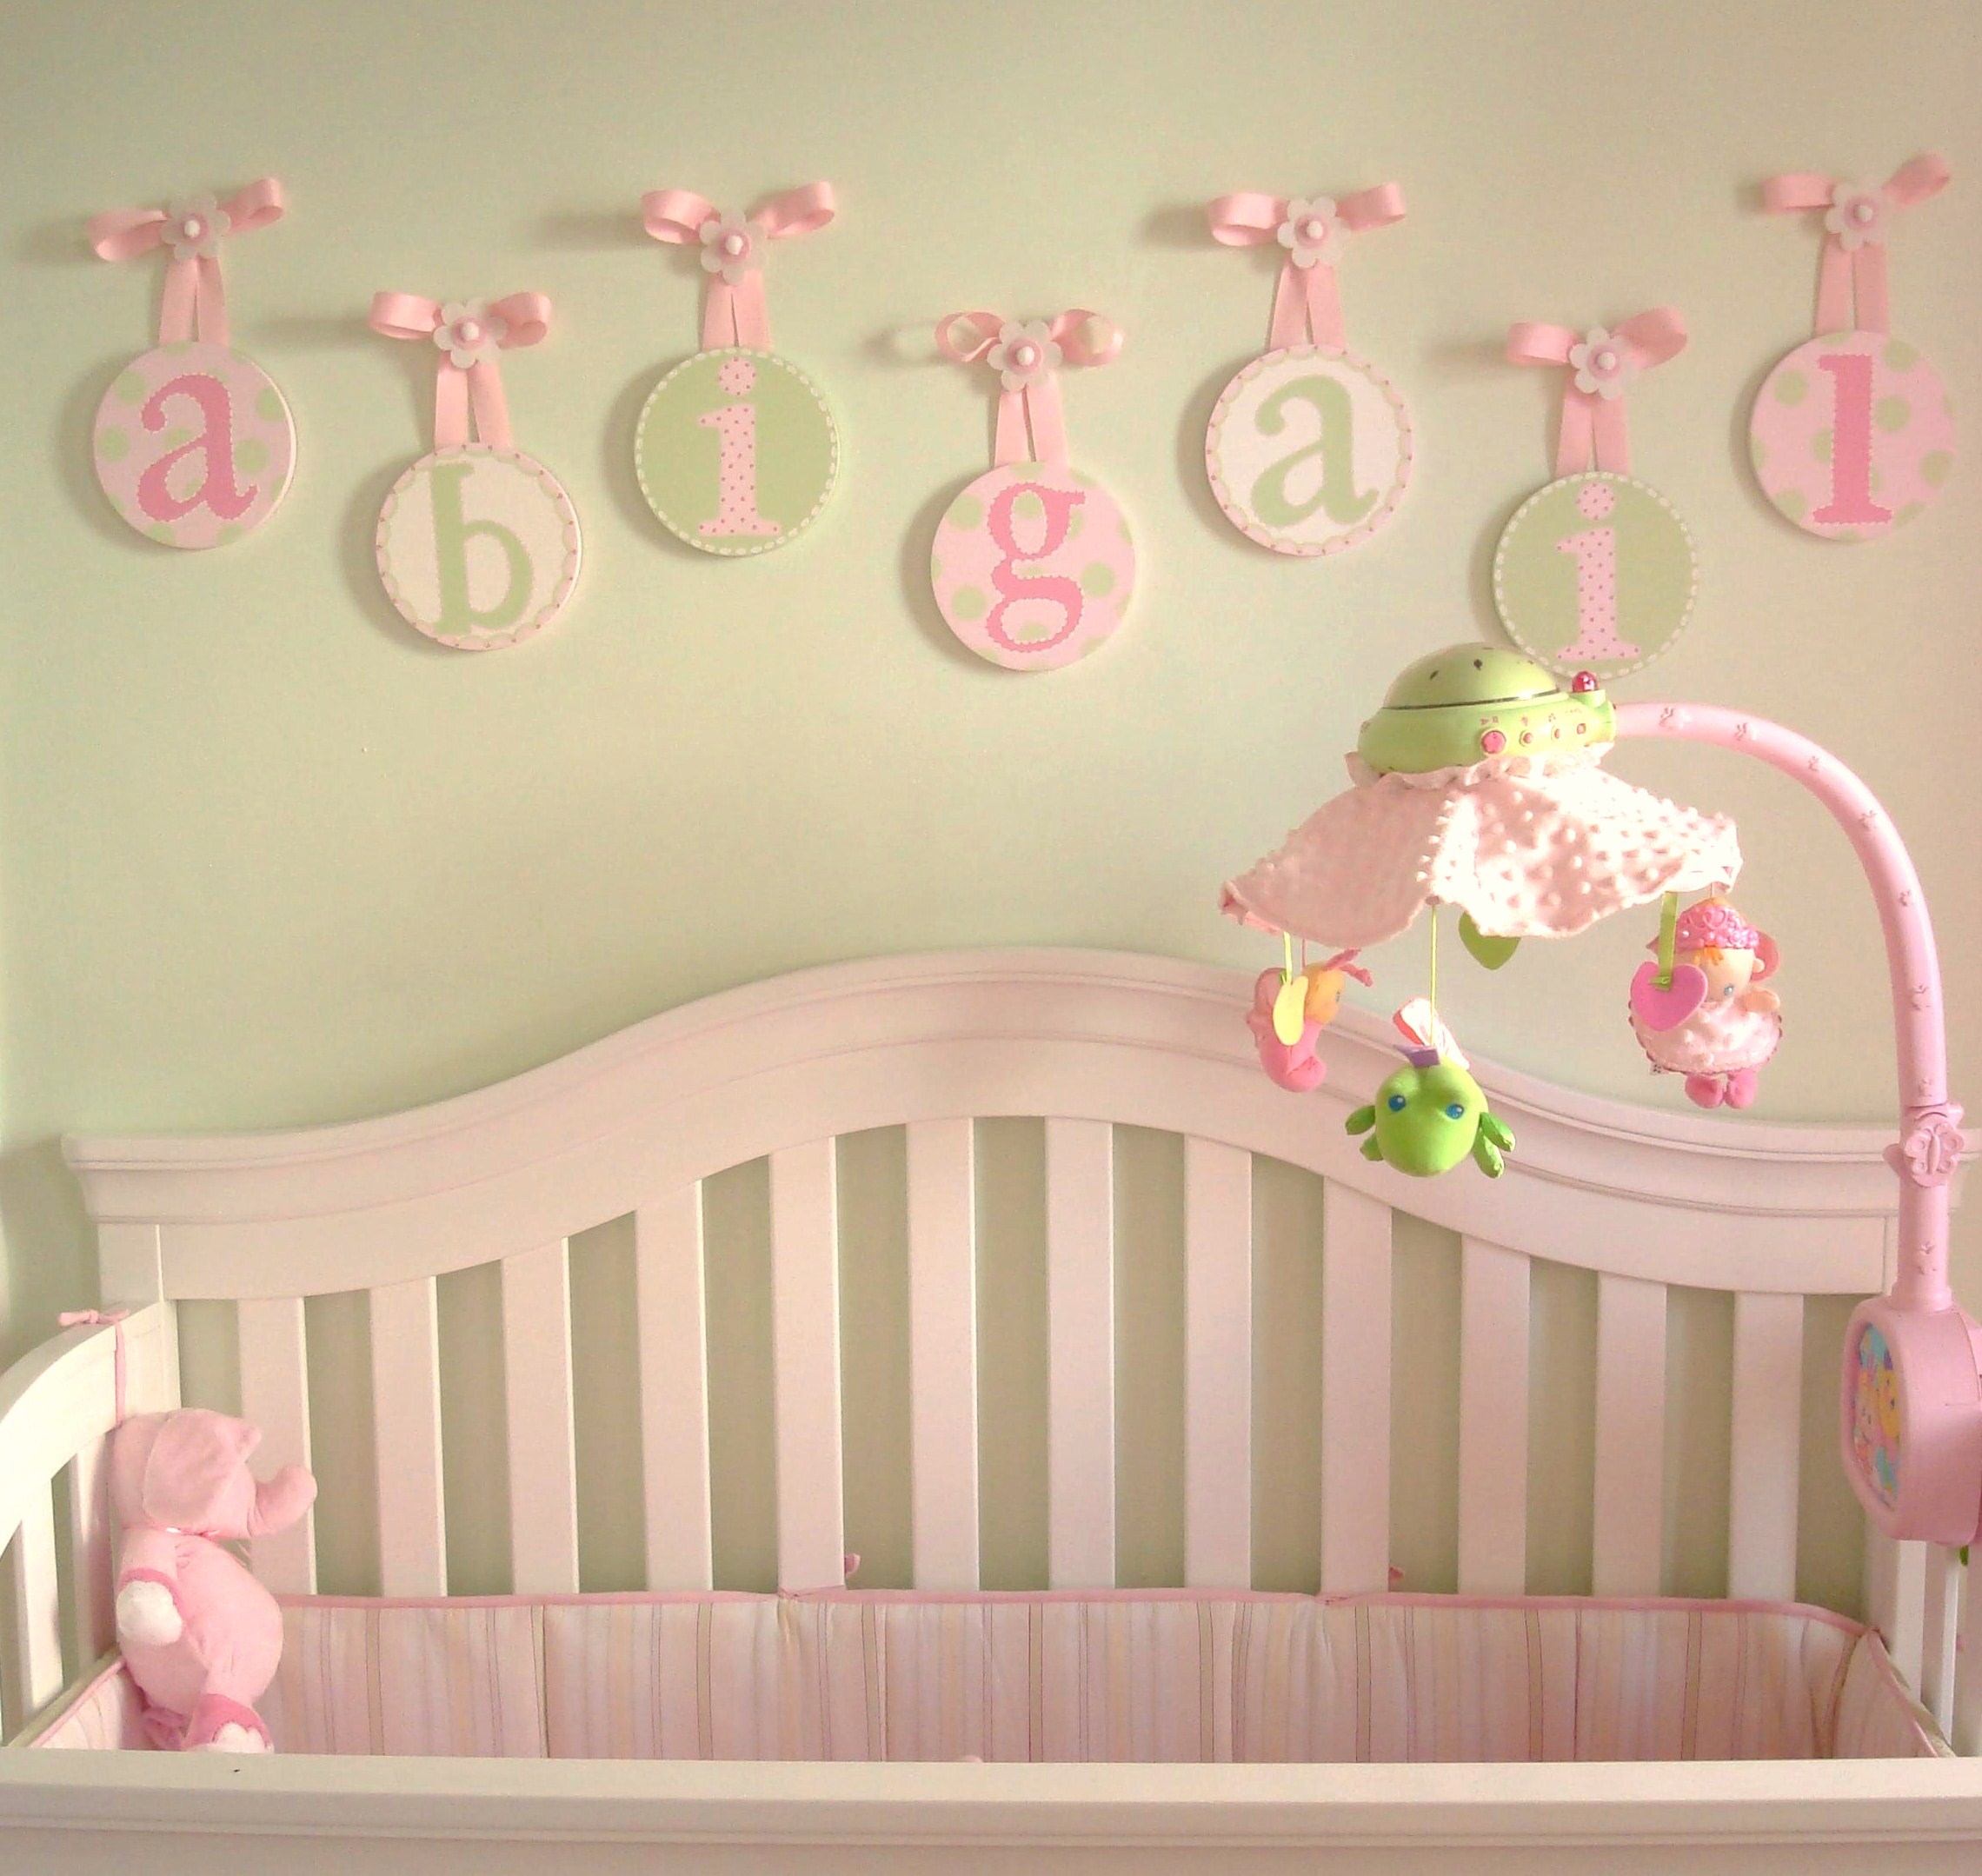 Hanging letters for Baby room decoration girl